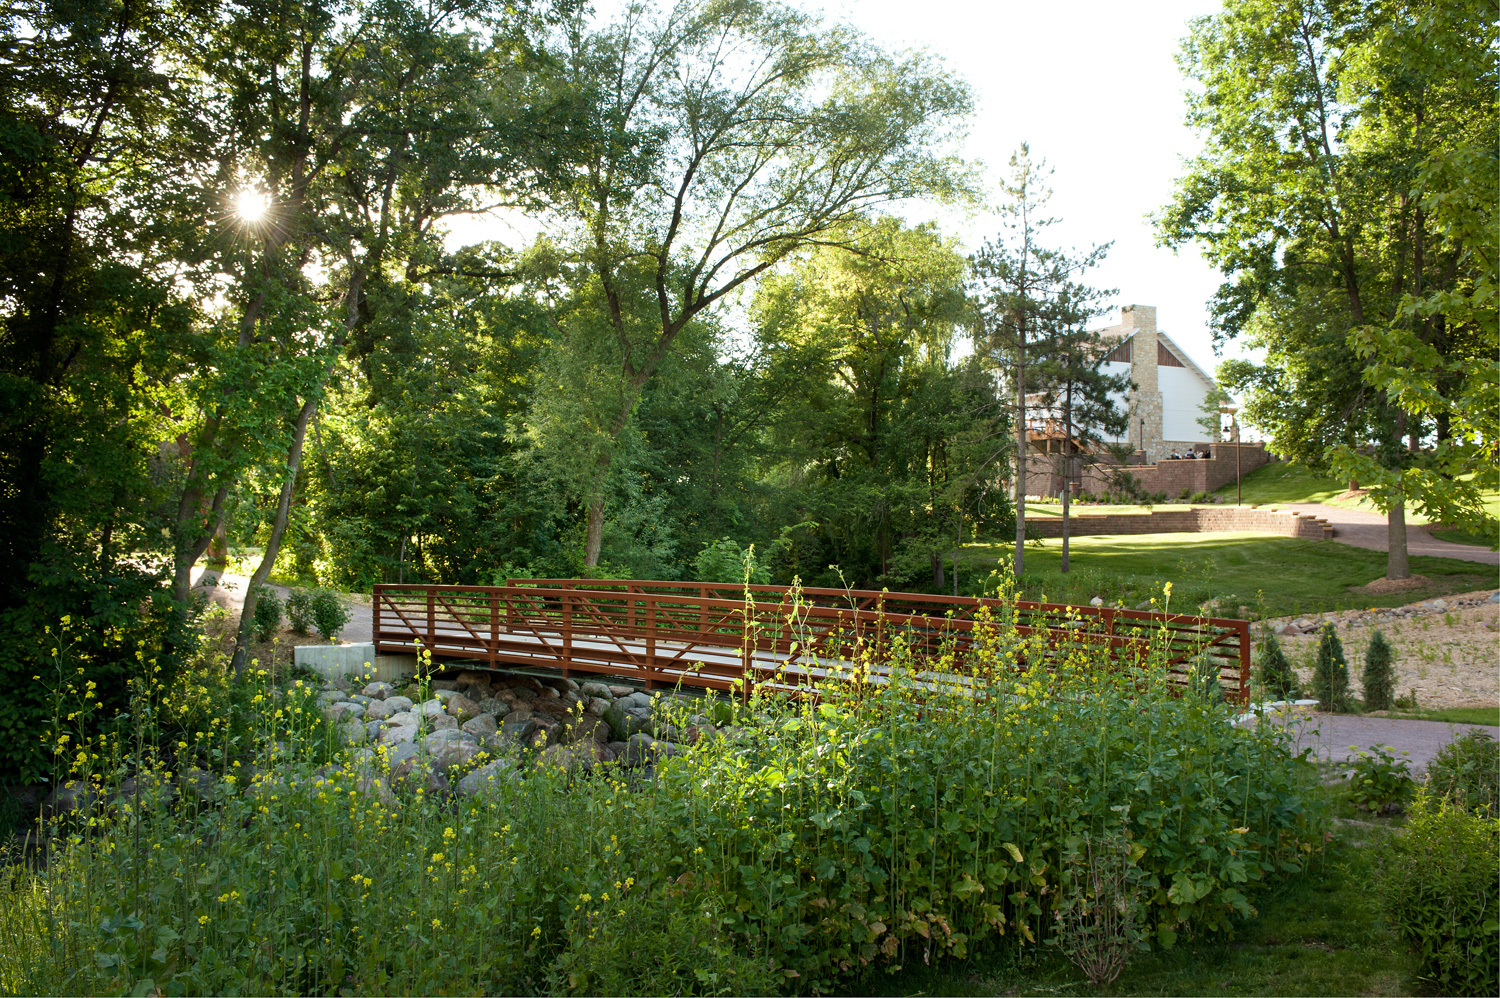 landscaping and bridge over stream at winery